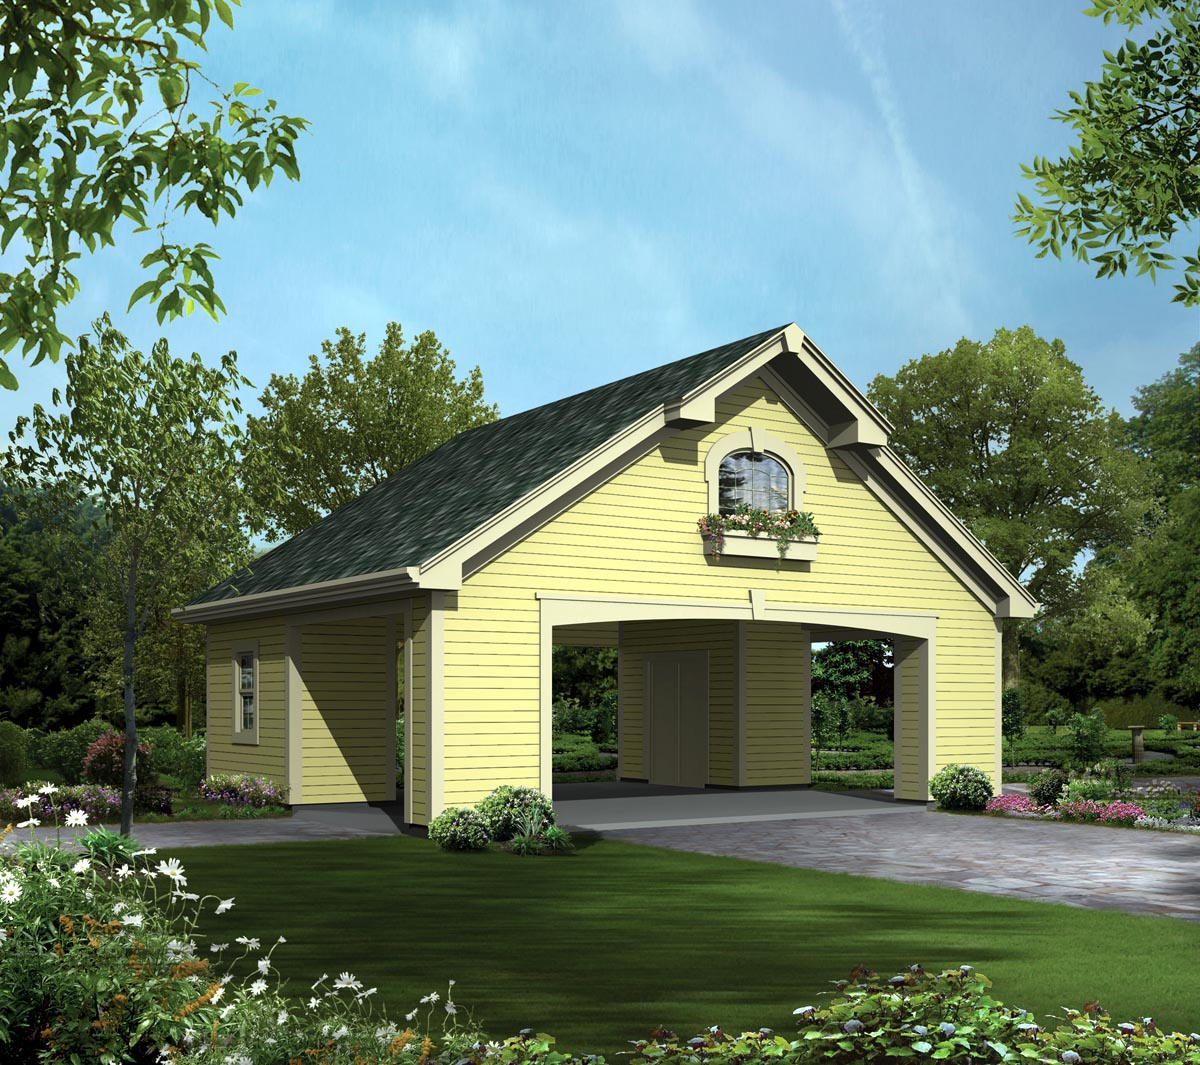 Vipp Shelter also 4 Bedroom Split Level Floor Plans together with 2 Bedroom Prefab Cabins also LEED Prefab Platinum Homes together with Cheap 3 Bedroom House Plan. on transportable small 2 bedroom house